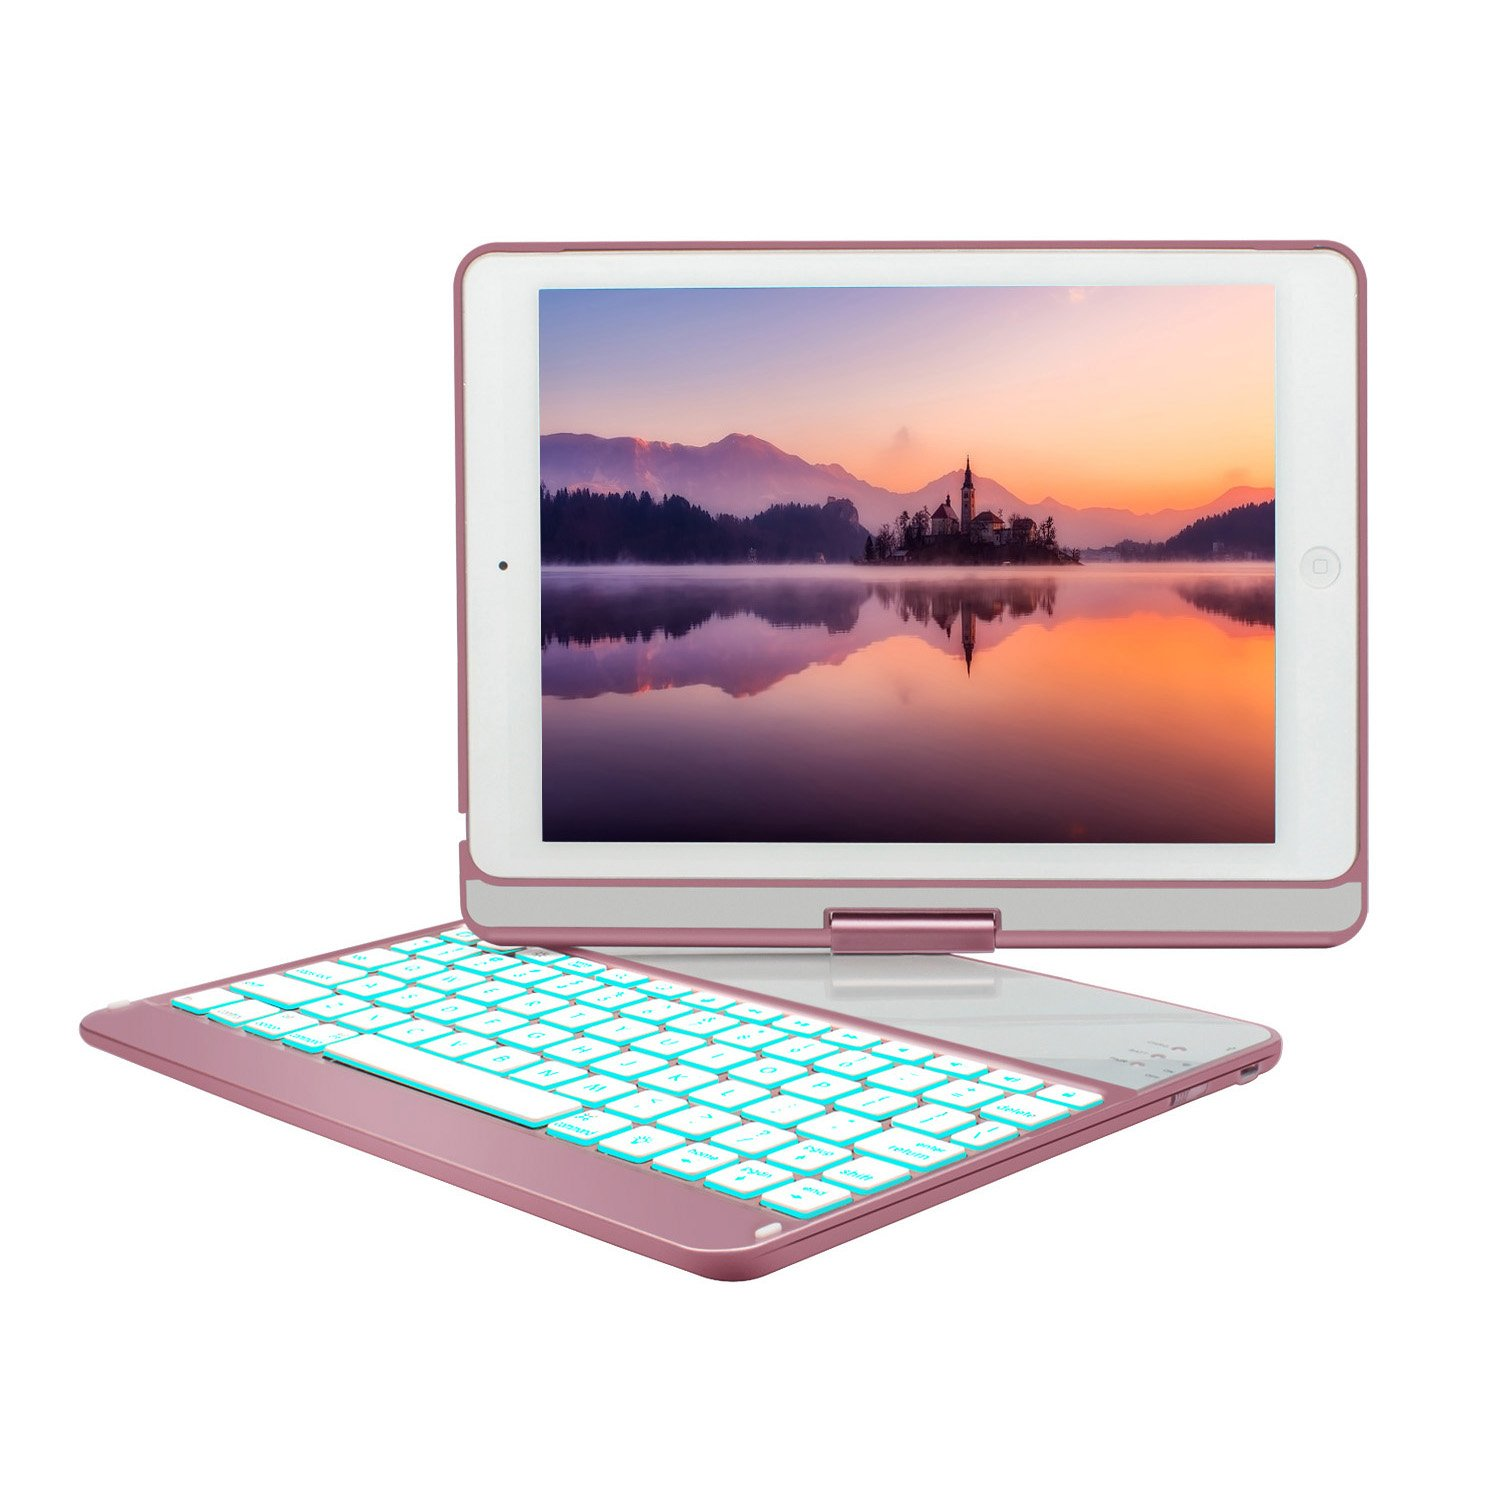 New iPad 9.7 Keyboard Case (2017,2018), GreenLaw 7 Color Backlit Keyboard Case Cover 360 Rotate Smart Keyboard Case with Auto Wake/Sleep for iPad pro 9.7, New iPad 2018, ipad 2017, iPad Air, Air 2